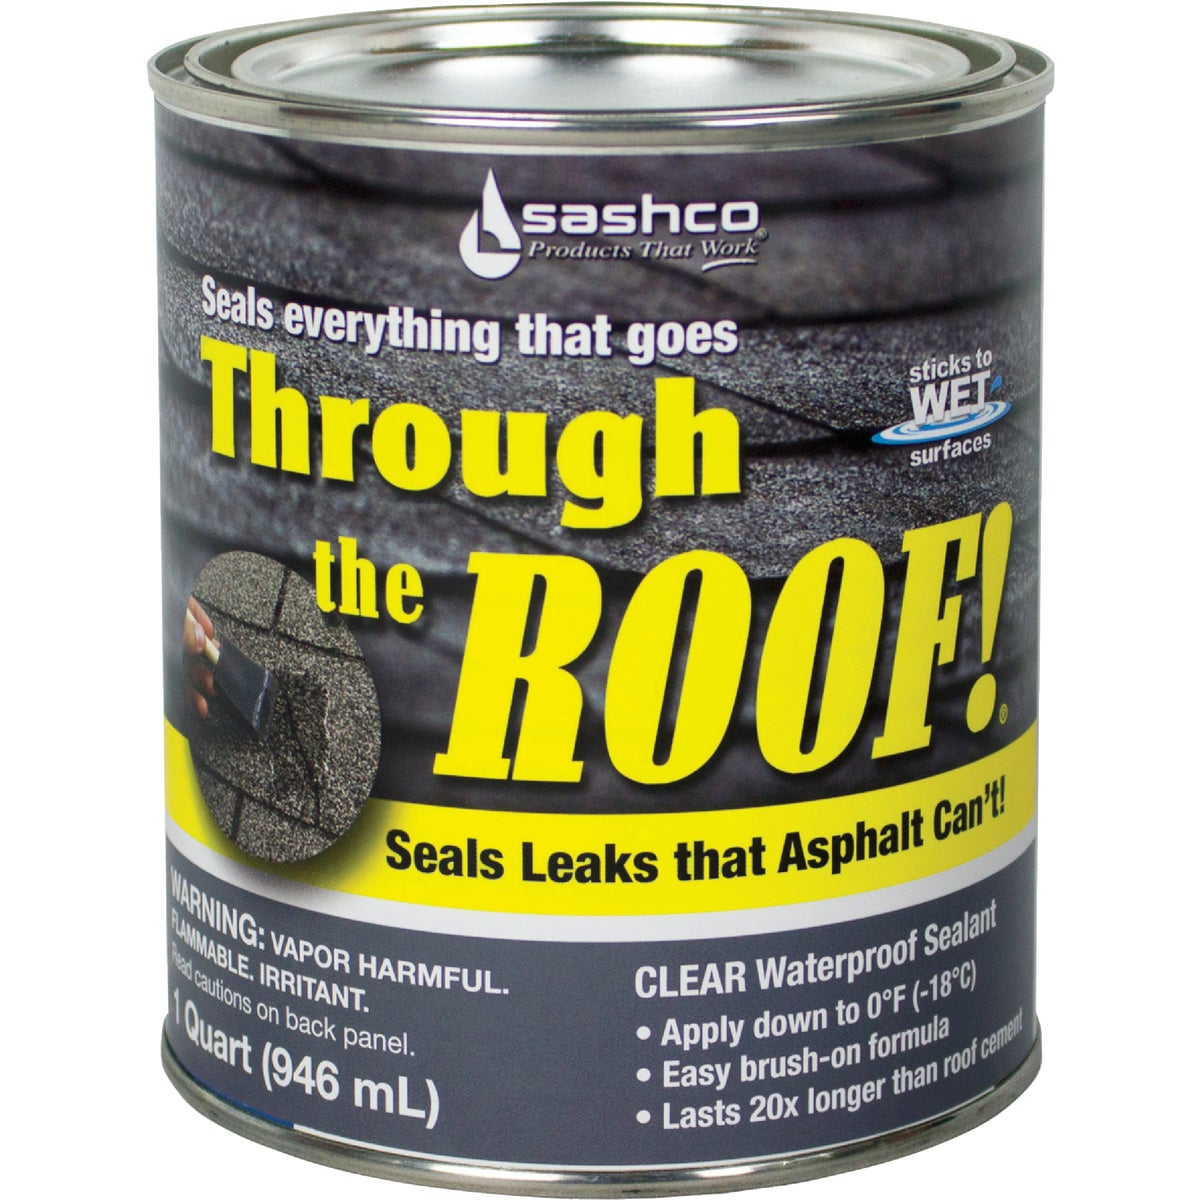 QT VOC CLR ROOF SEALANT - 14023 by Sashco Sealants Inc